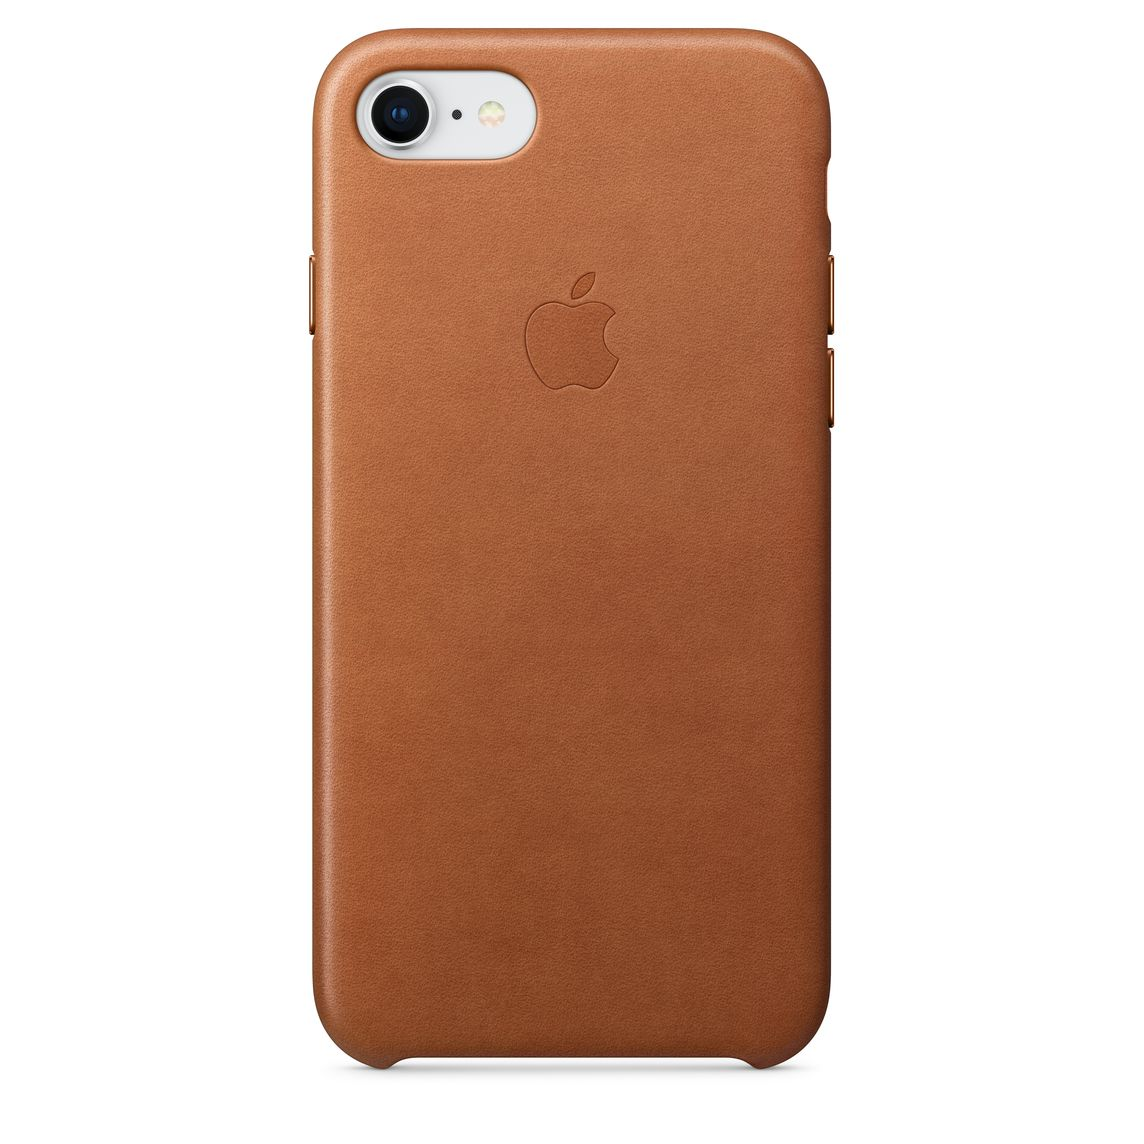 apple iphone 7 phone case leather